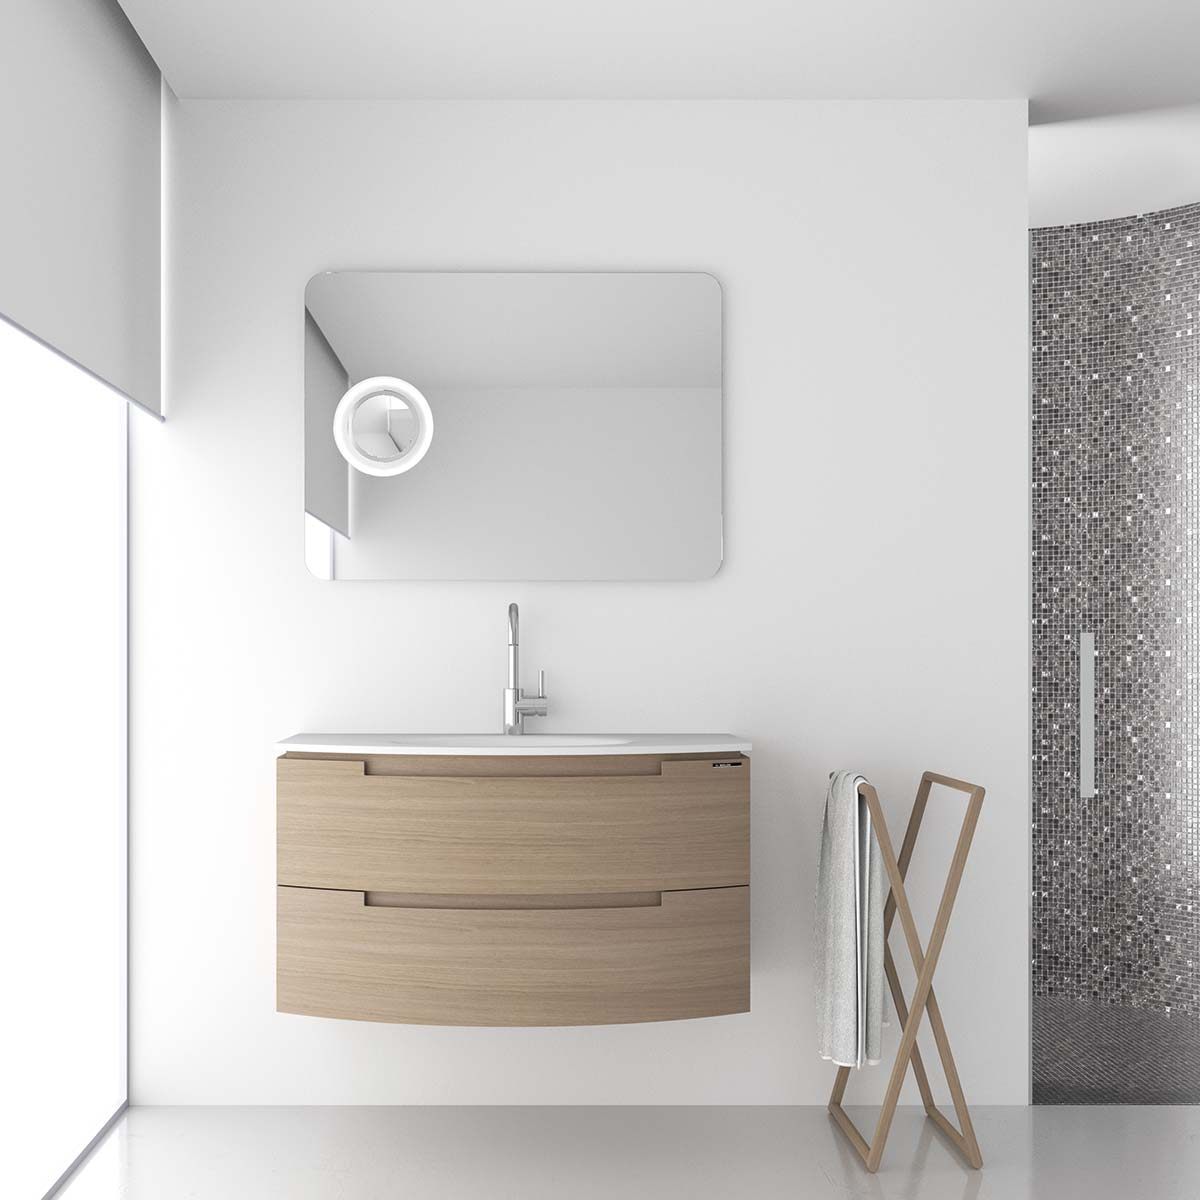 Stunning Berloni Bagno Prezzi Pictures - Mosquee-rodez.com - mosquee ...